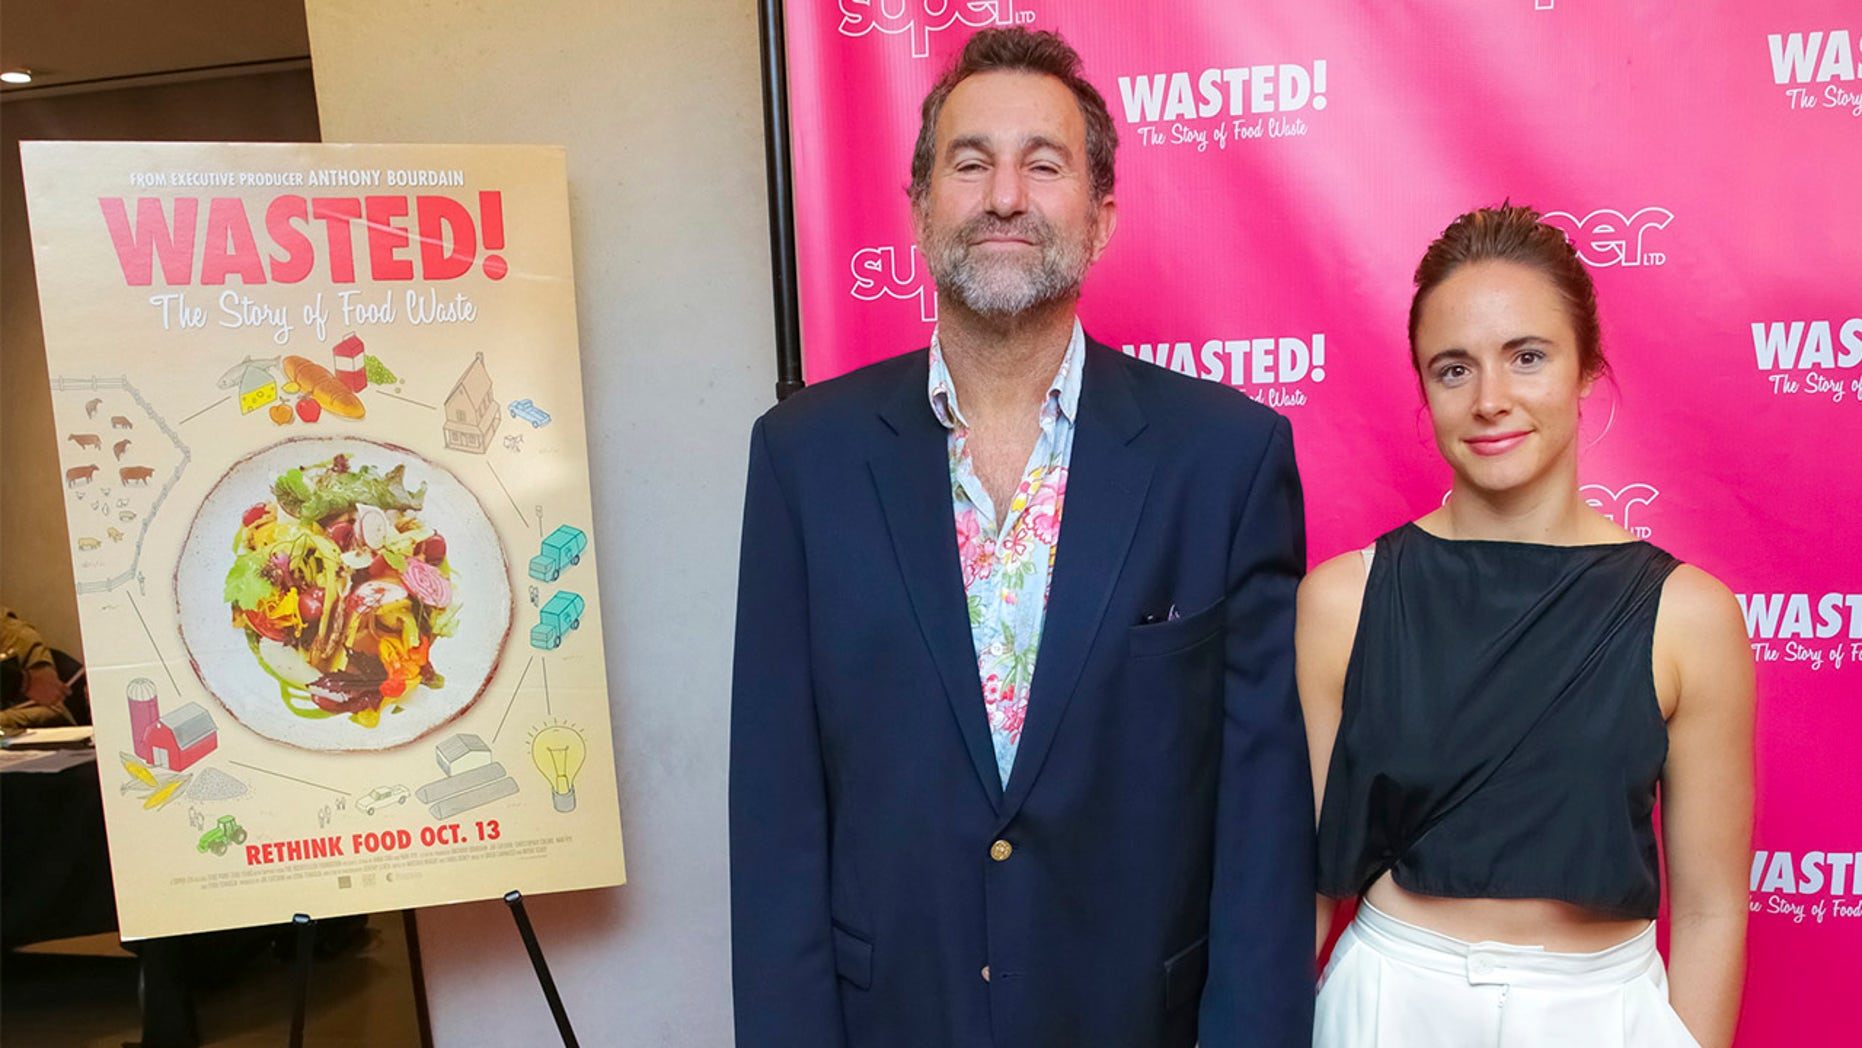 Restaurateur Ken Friedman, seen here with a guest at a 2017 film premiere, has been accused of sexual harassment by his former employees.